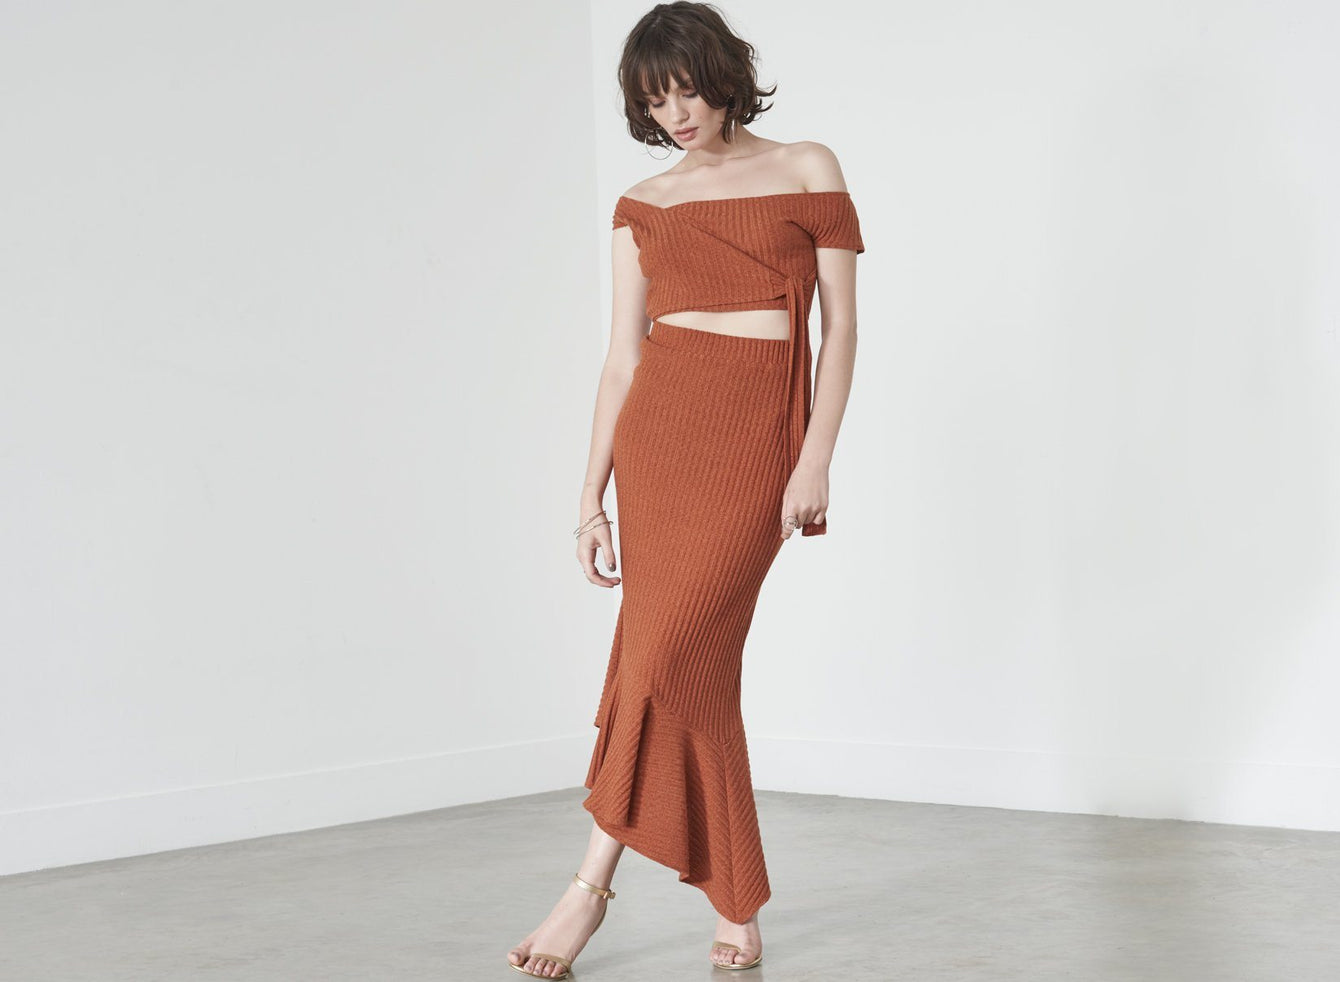 Waterfall Hem Midi Skirt in Rust Knit